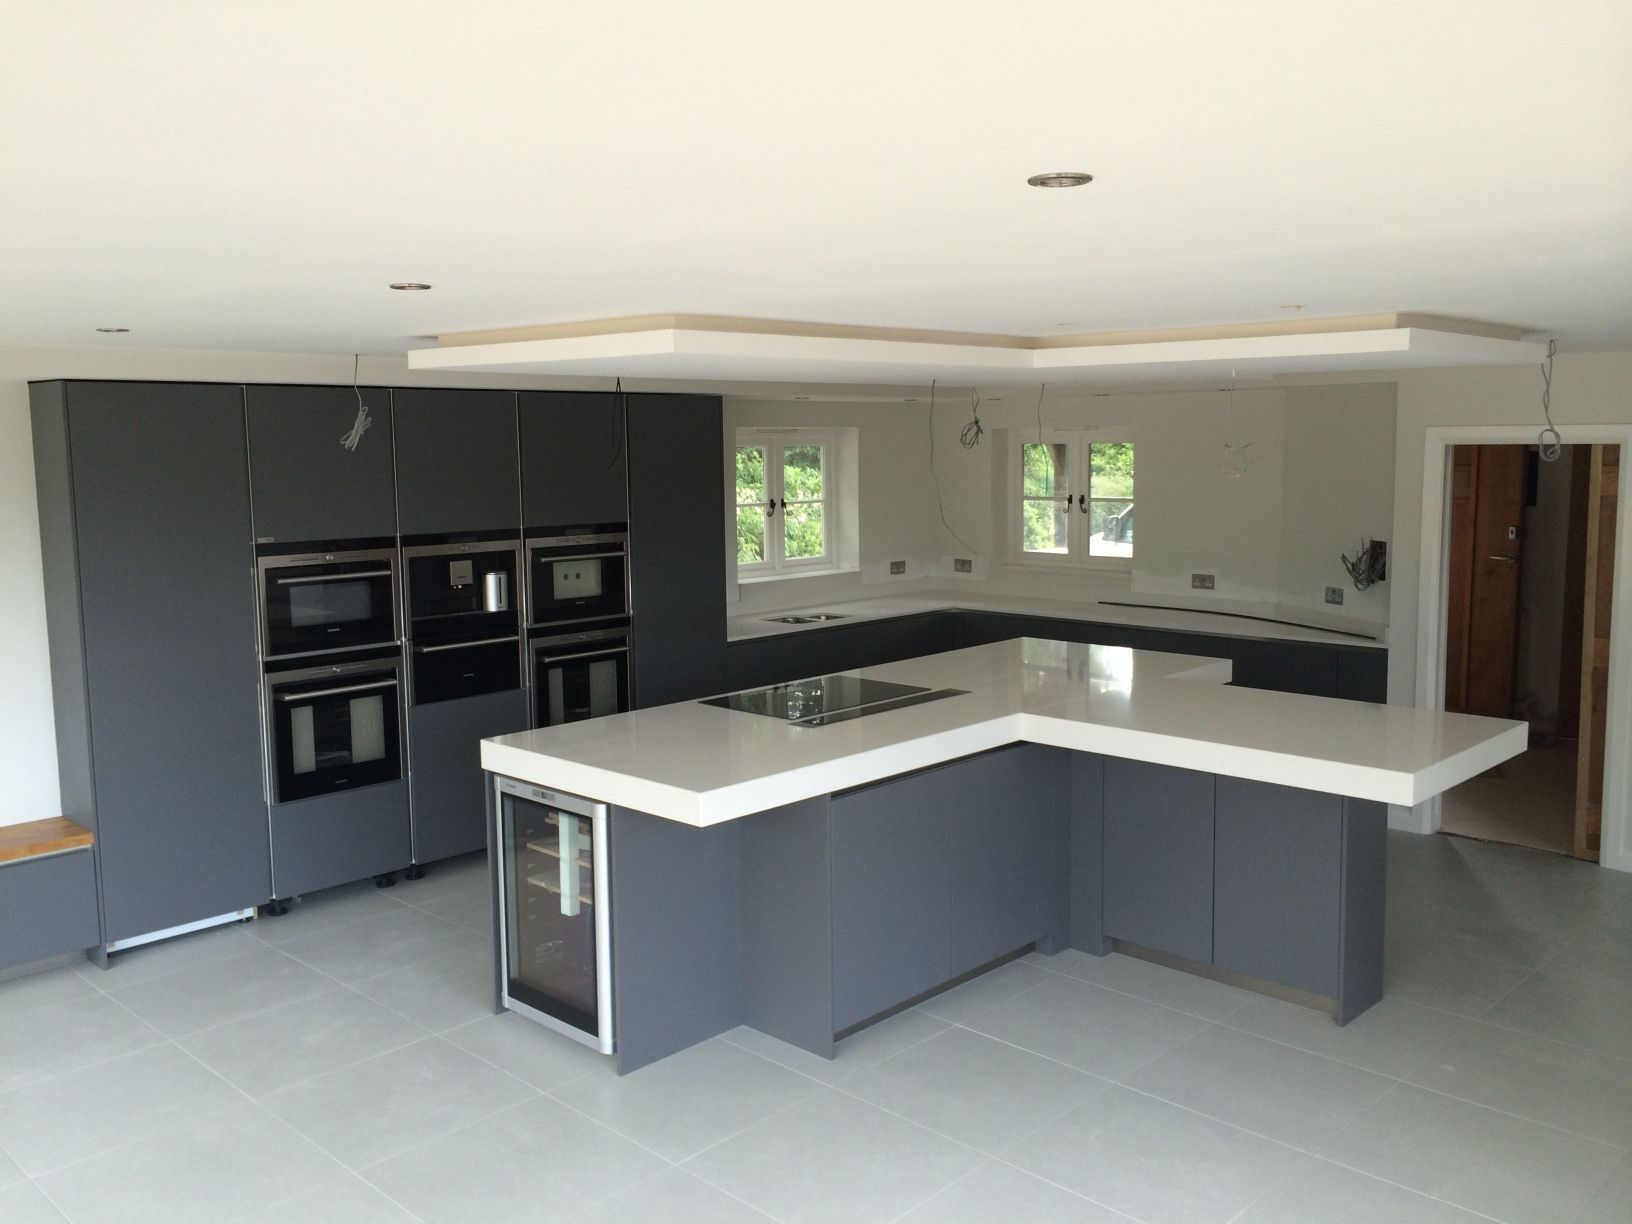 Pin By Black Rok Kitchen Design On Open Plan Kitchens | Pinterest |  Handleless Kitchen, Open Plan Kitchen And Open Plan